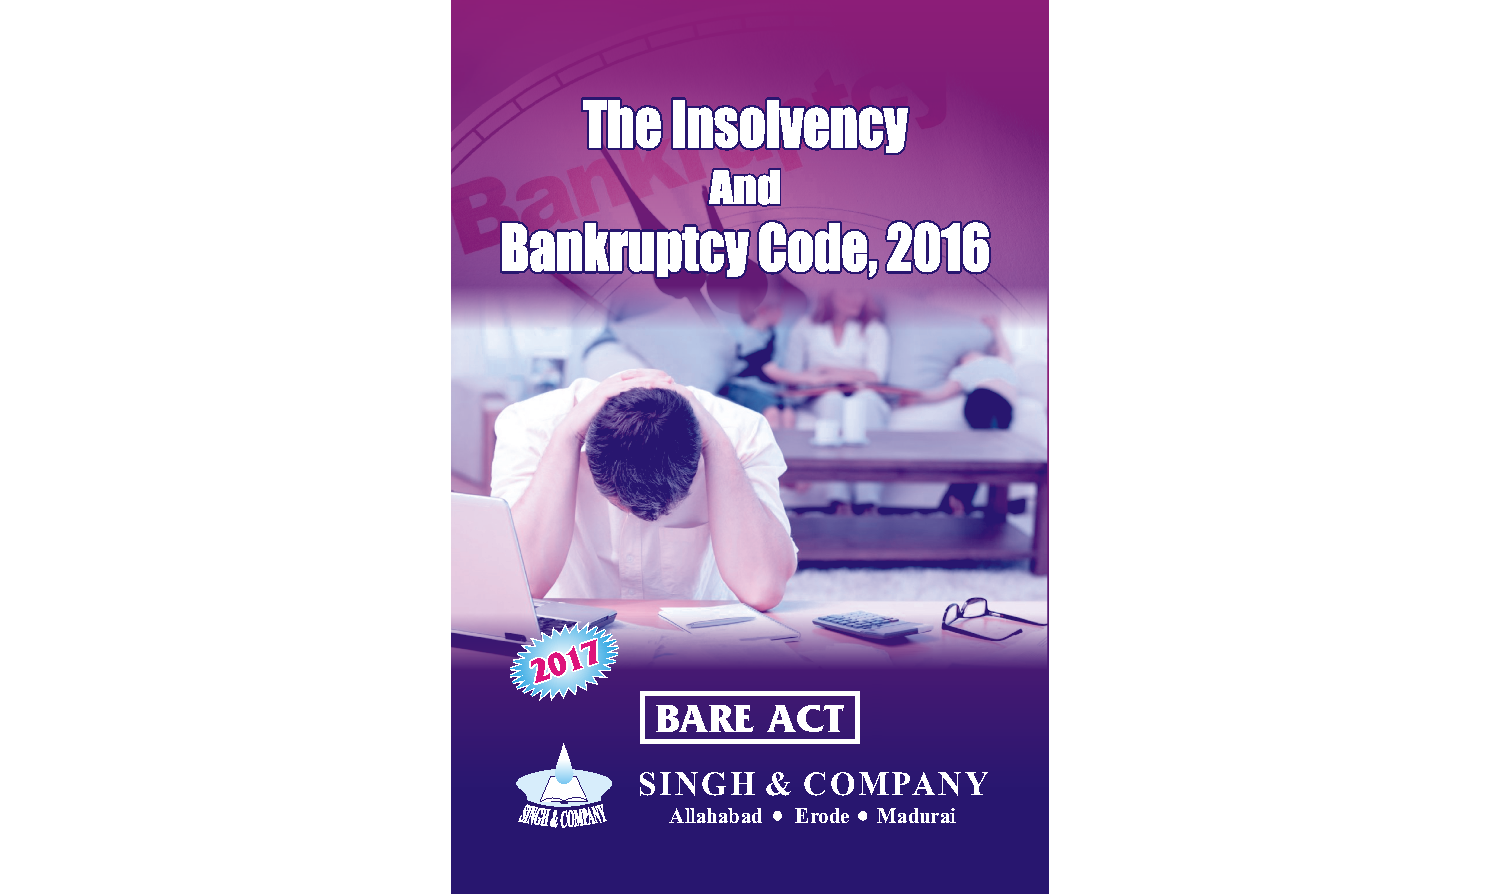 The Insolvency And Bankruptcy Code, 2016